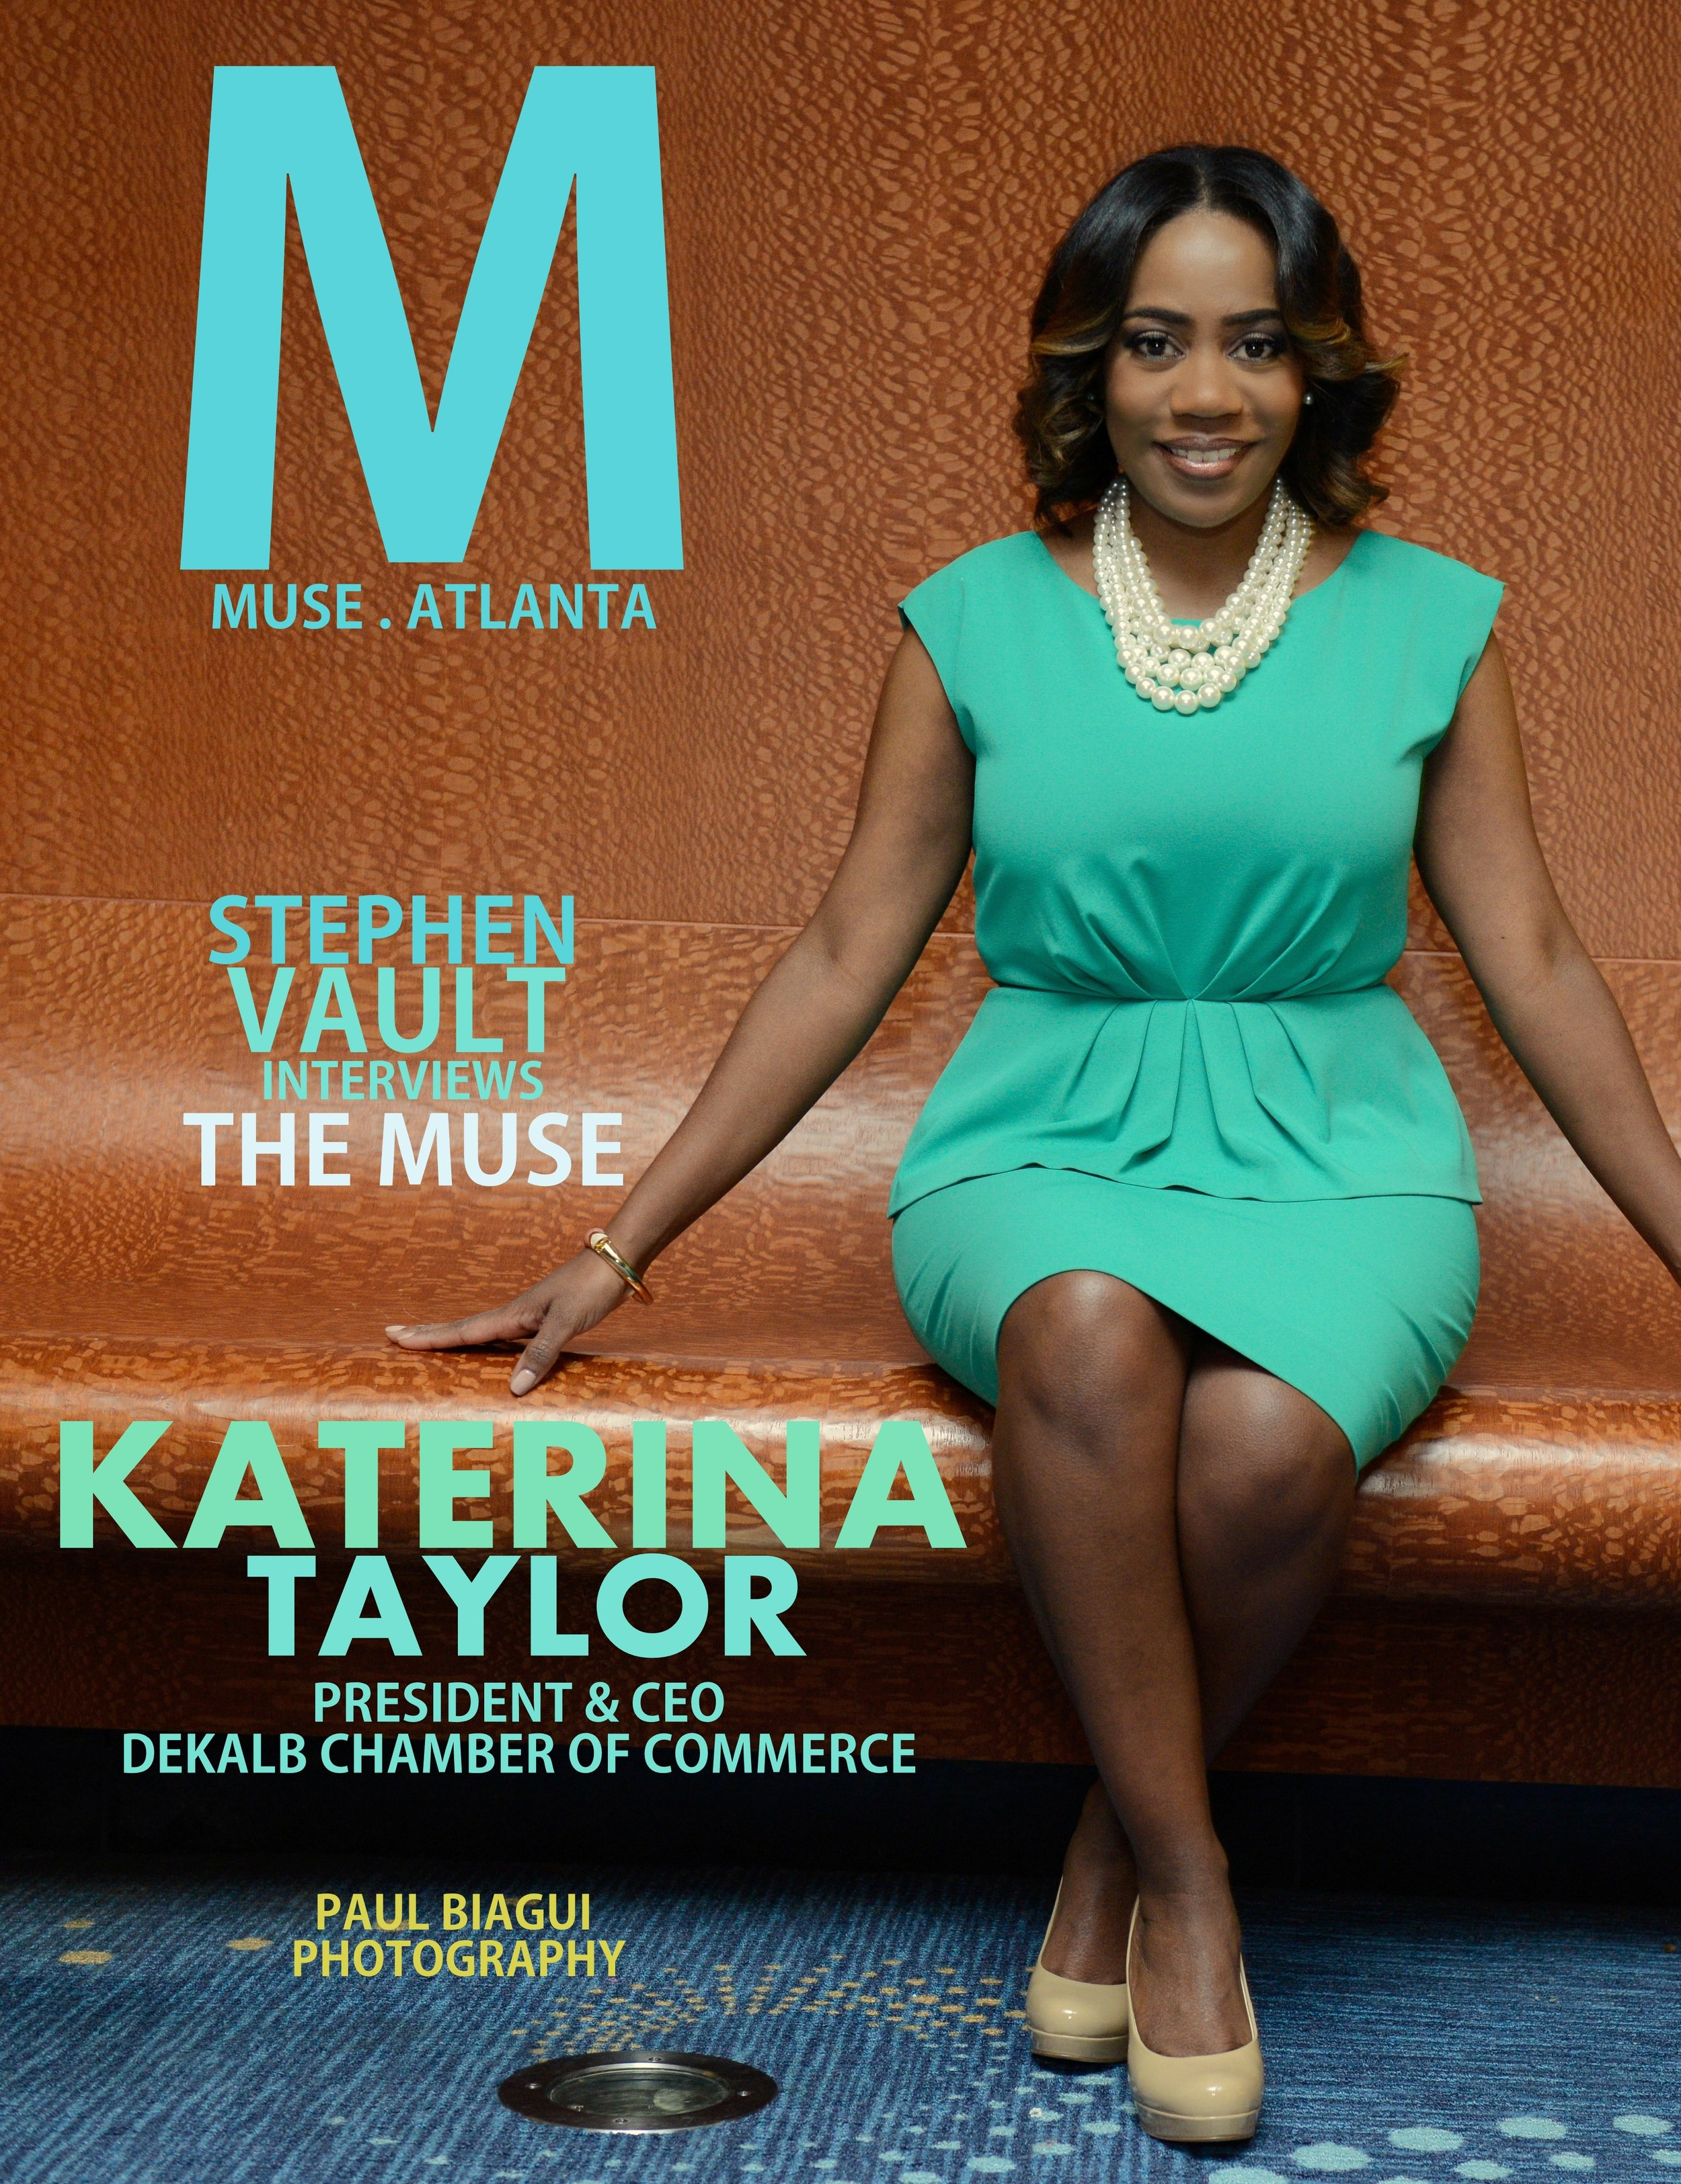 Katerina Taylor The Muse Book Cover R.jpg